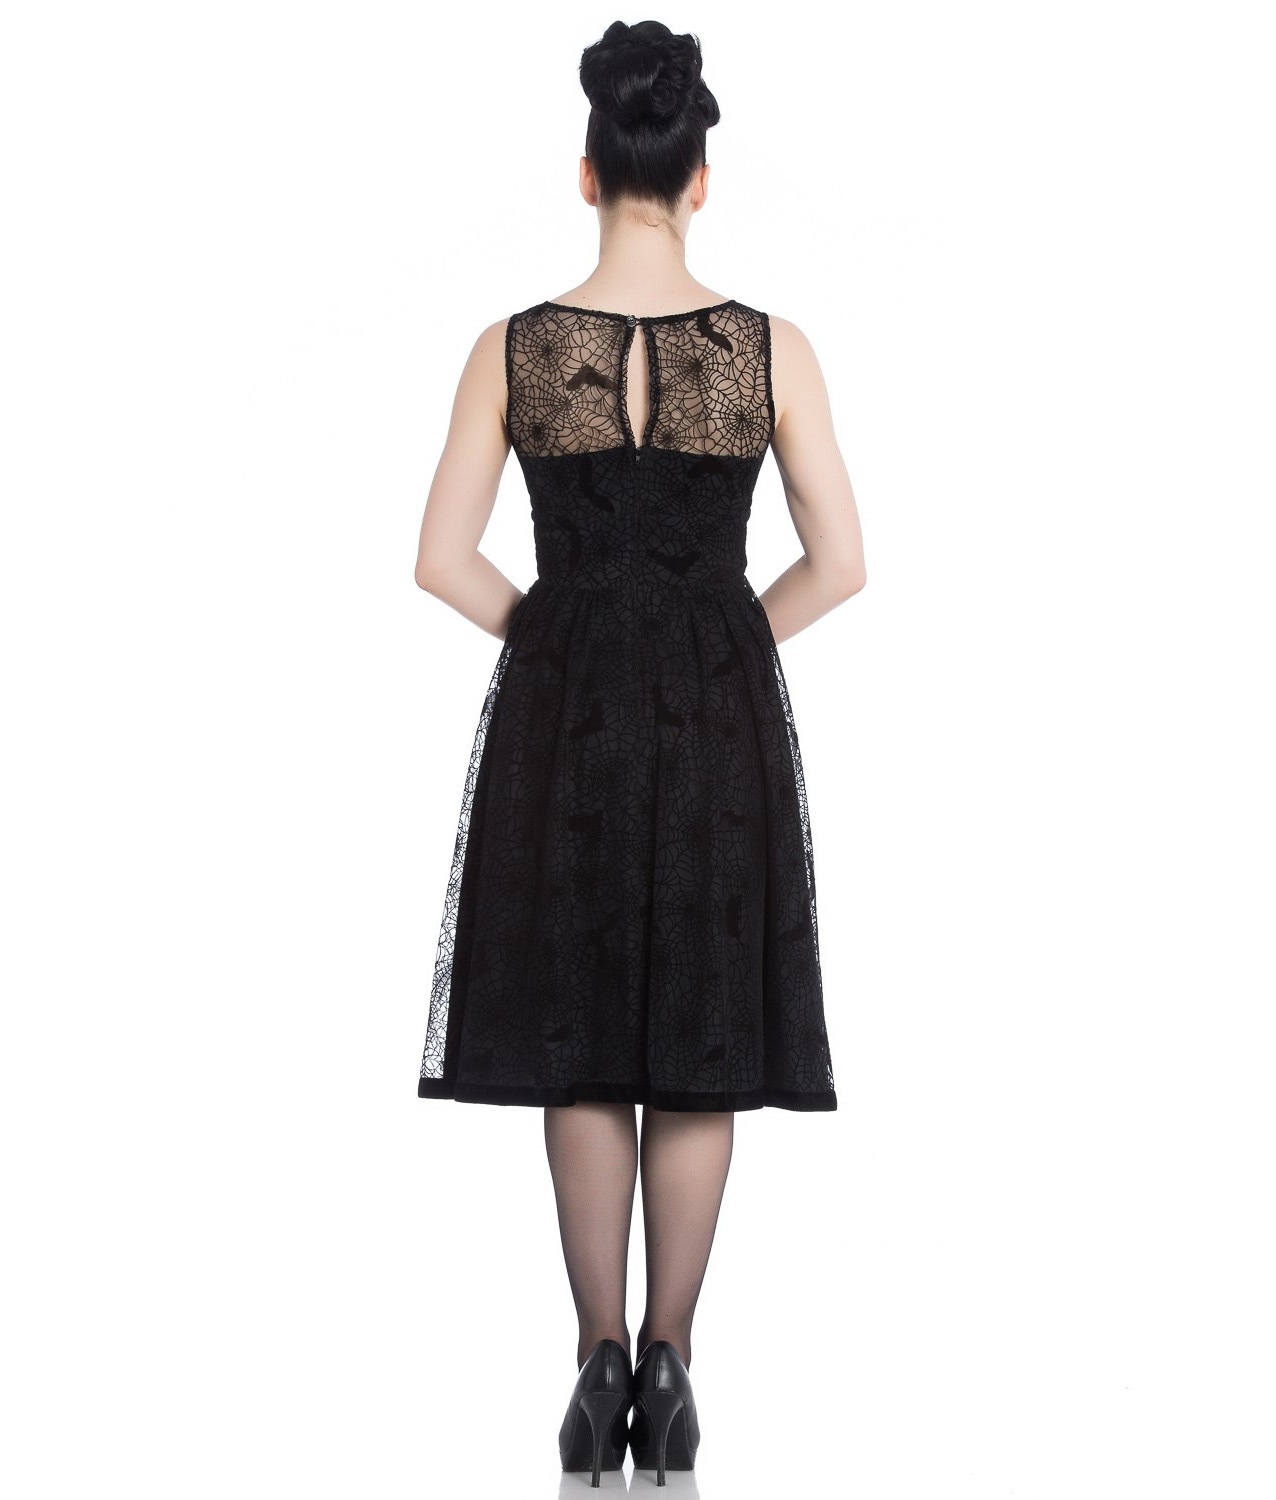 Hell-Bunny-50s-Black-Gothic-Net-Dress-Witchy-AMARANDE-Spiders-Bats-All-Sizes thumbnail 9